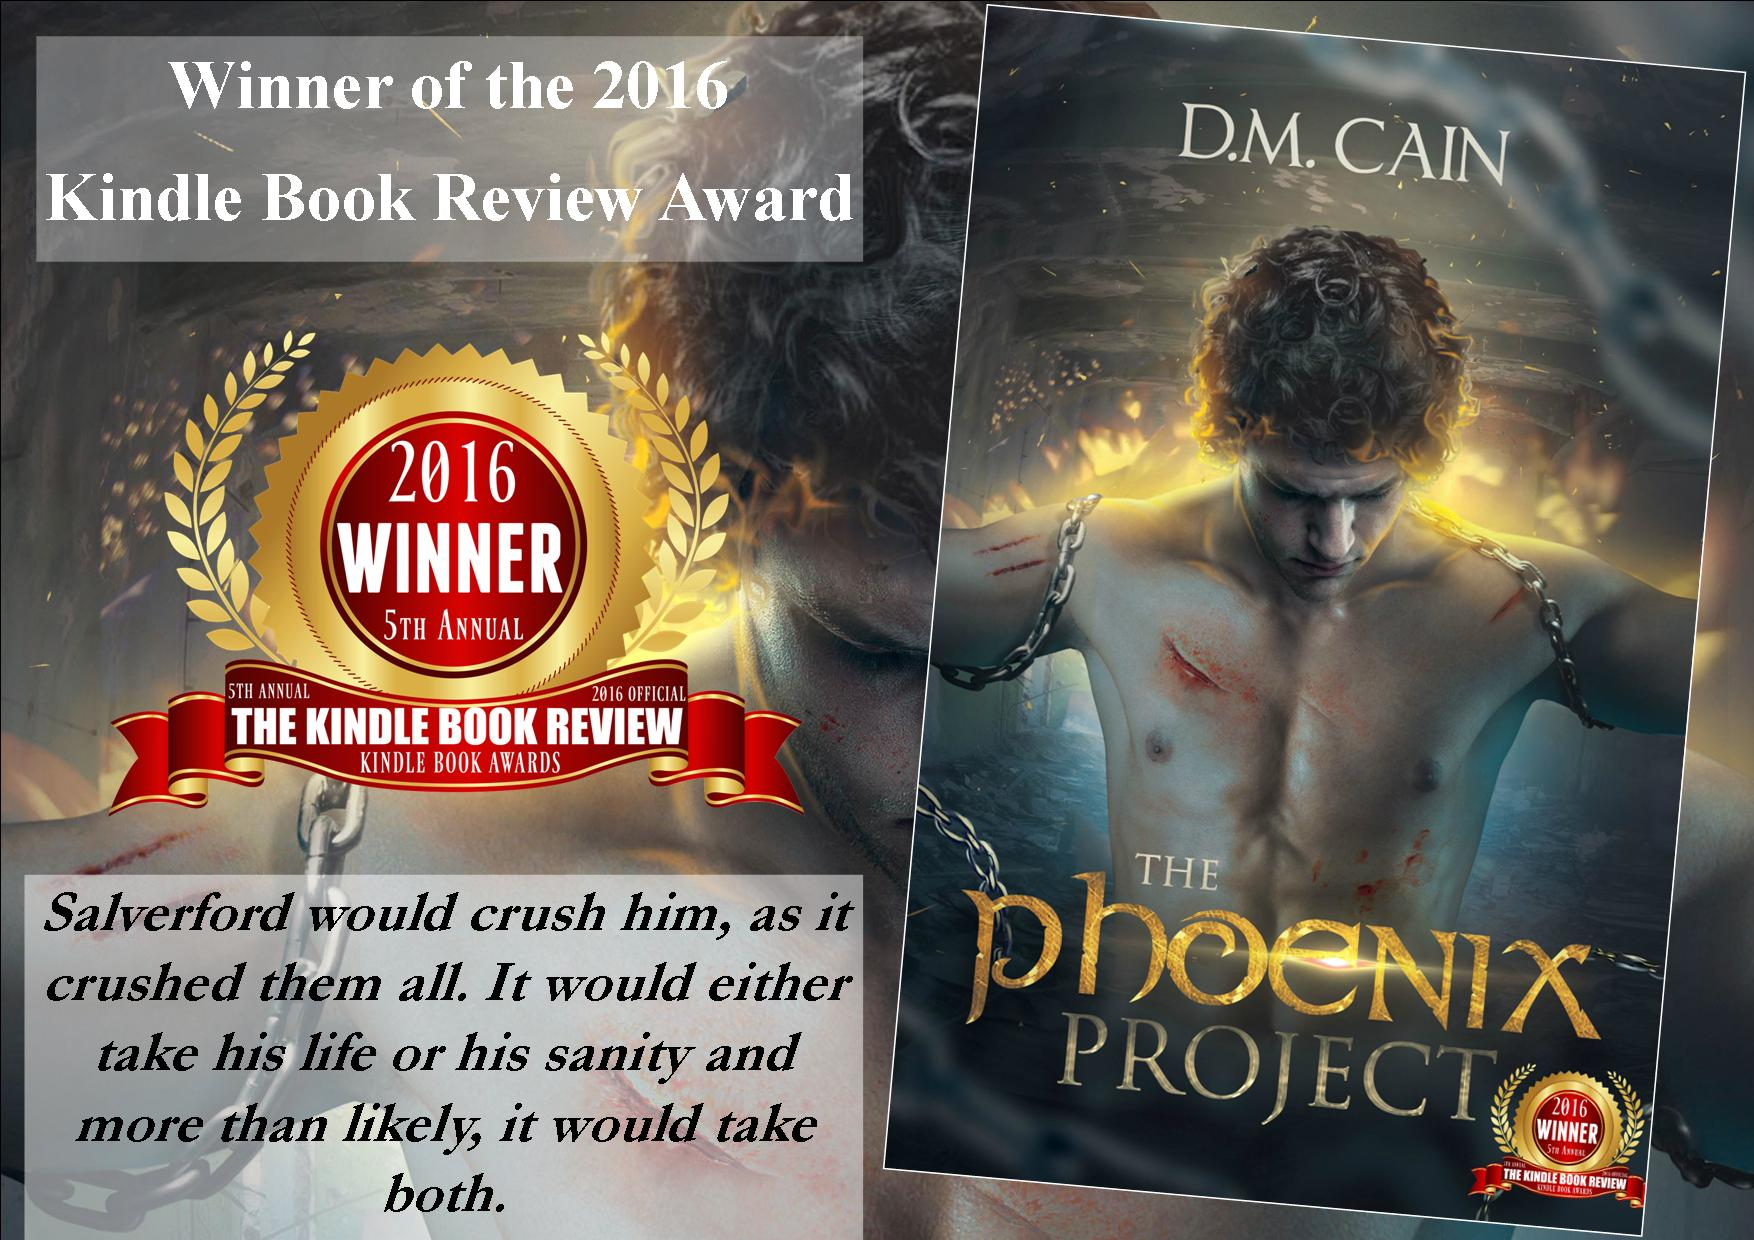 Dystopian thriller The Phoenix Project by D.M. Cain